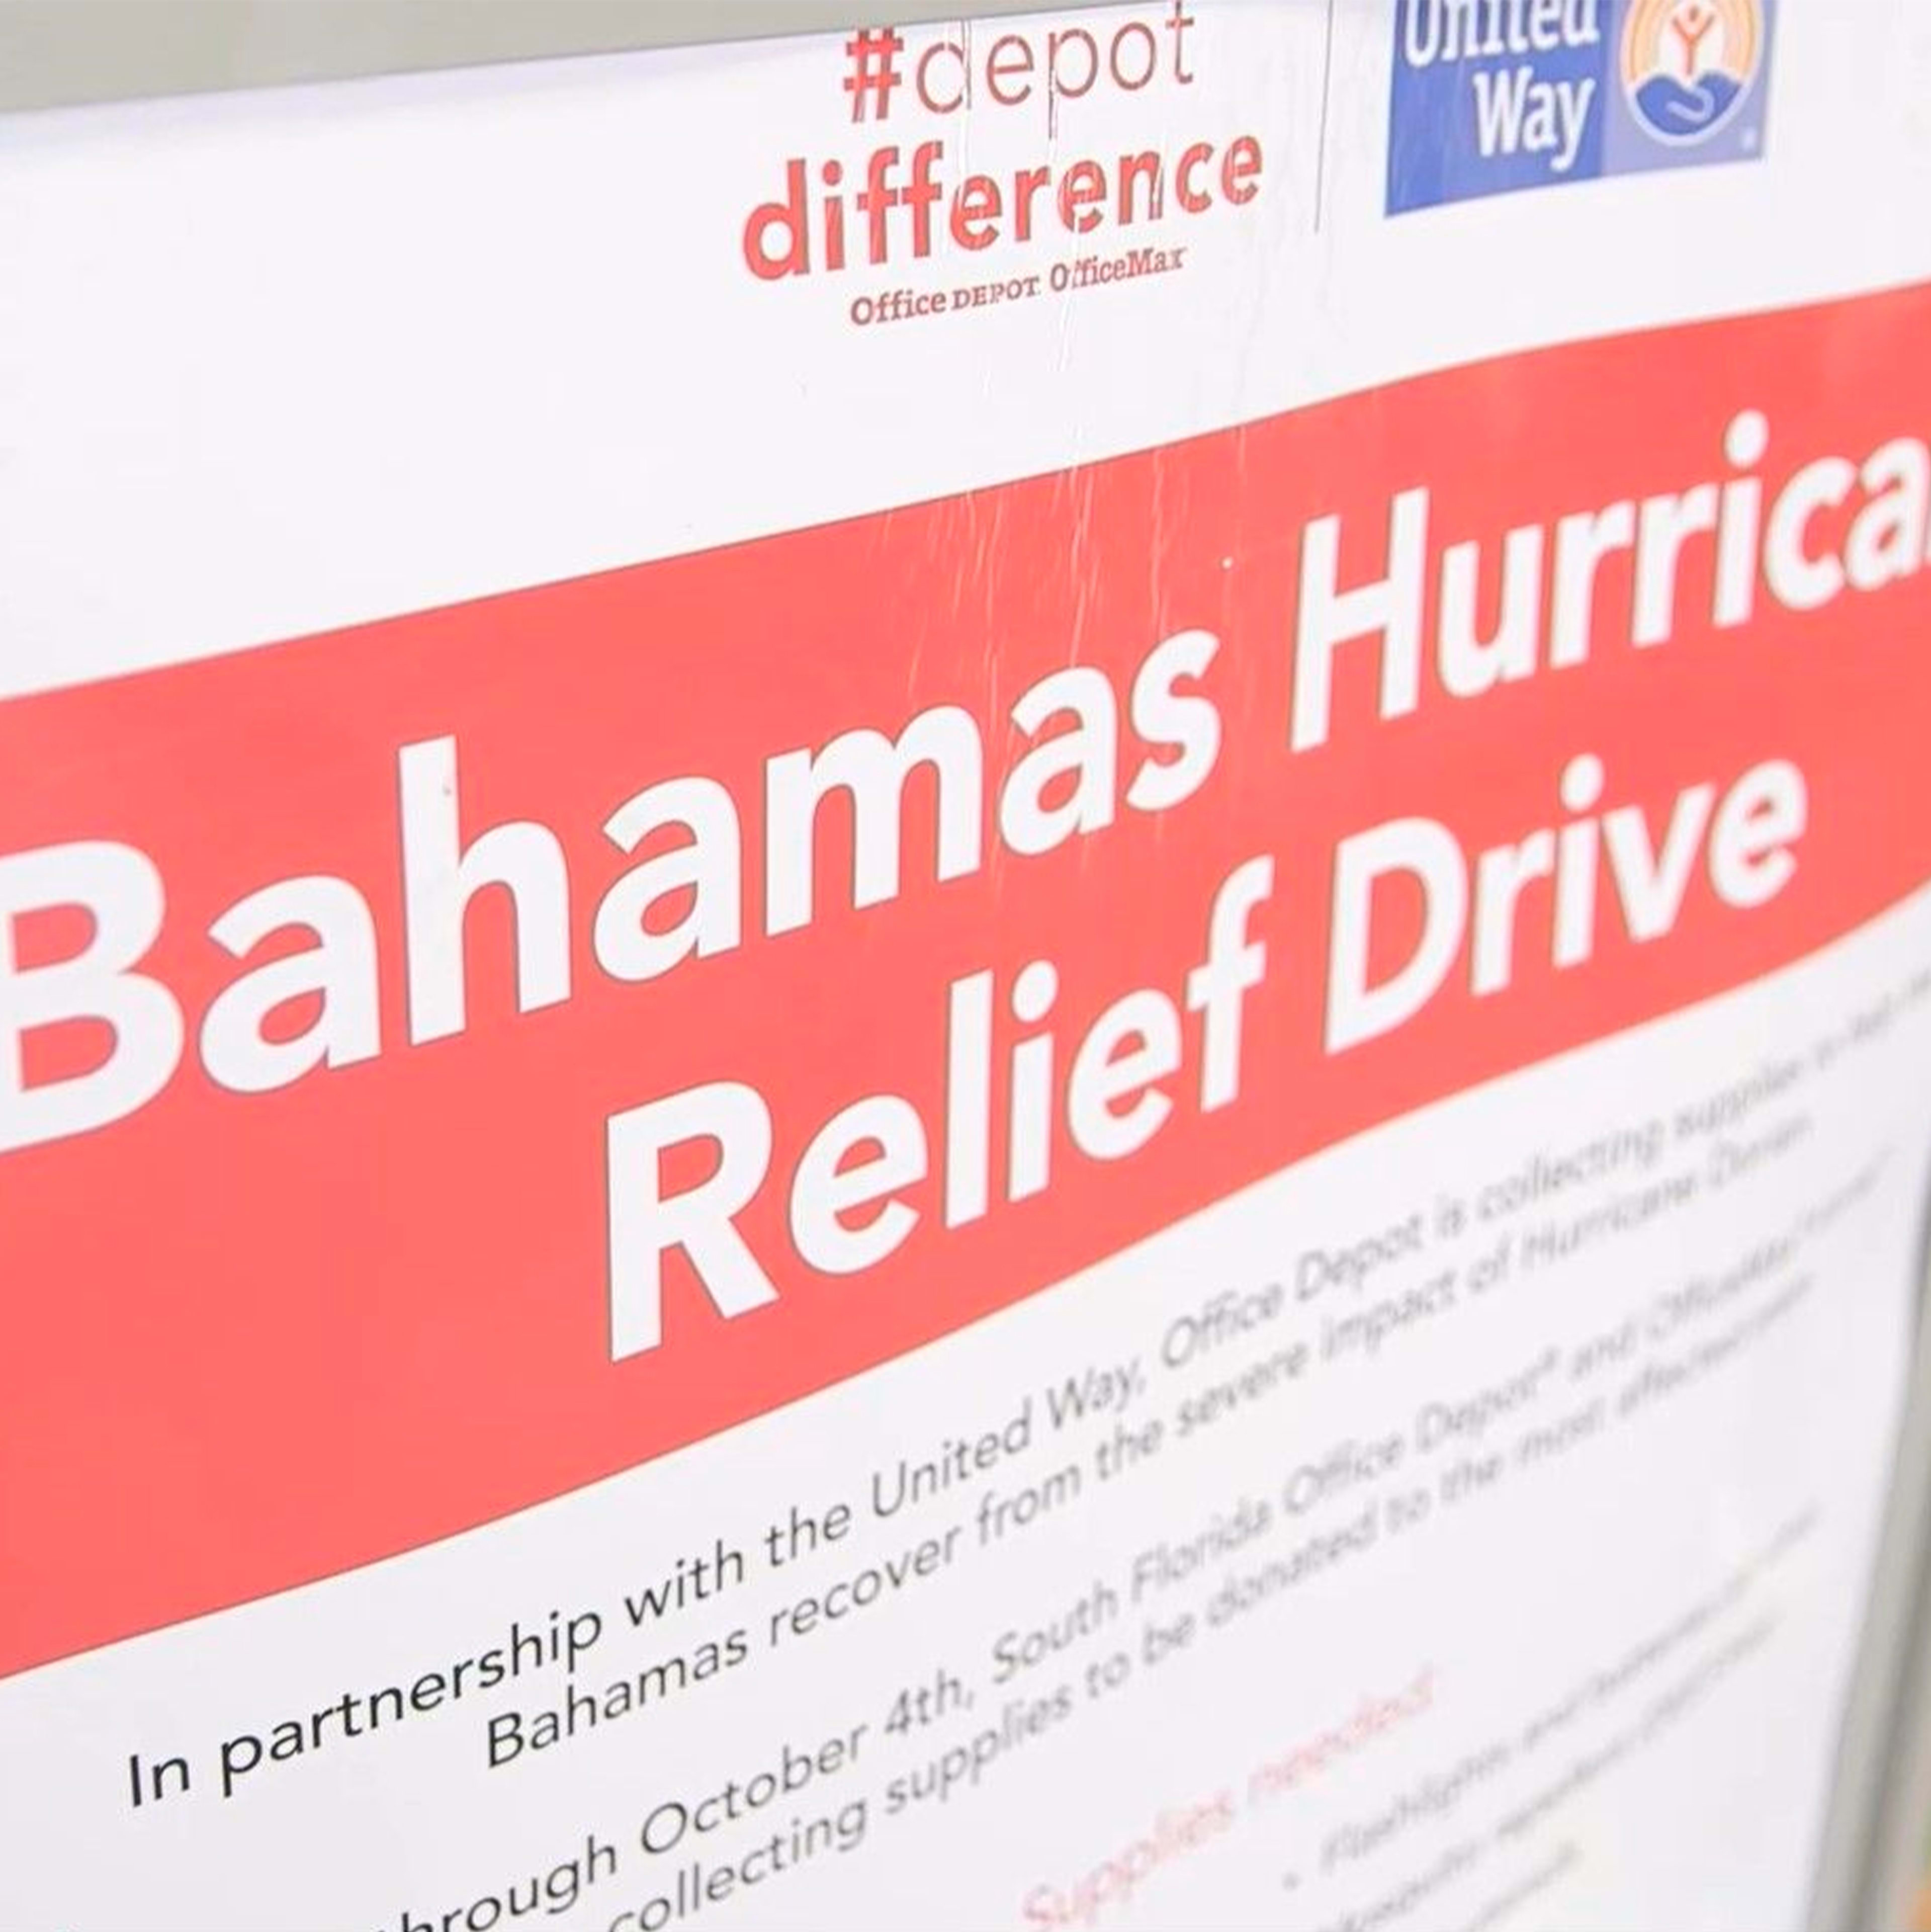 Office Depot support victims of Hurricane Dorian in Neighboring Bahamas